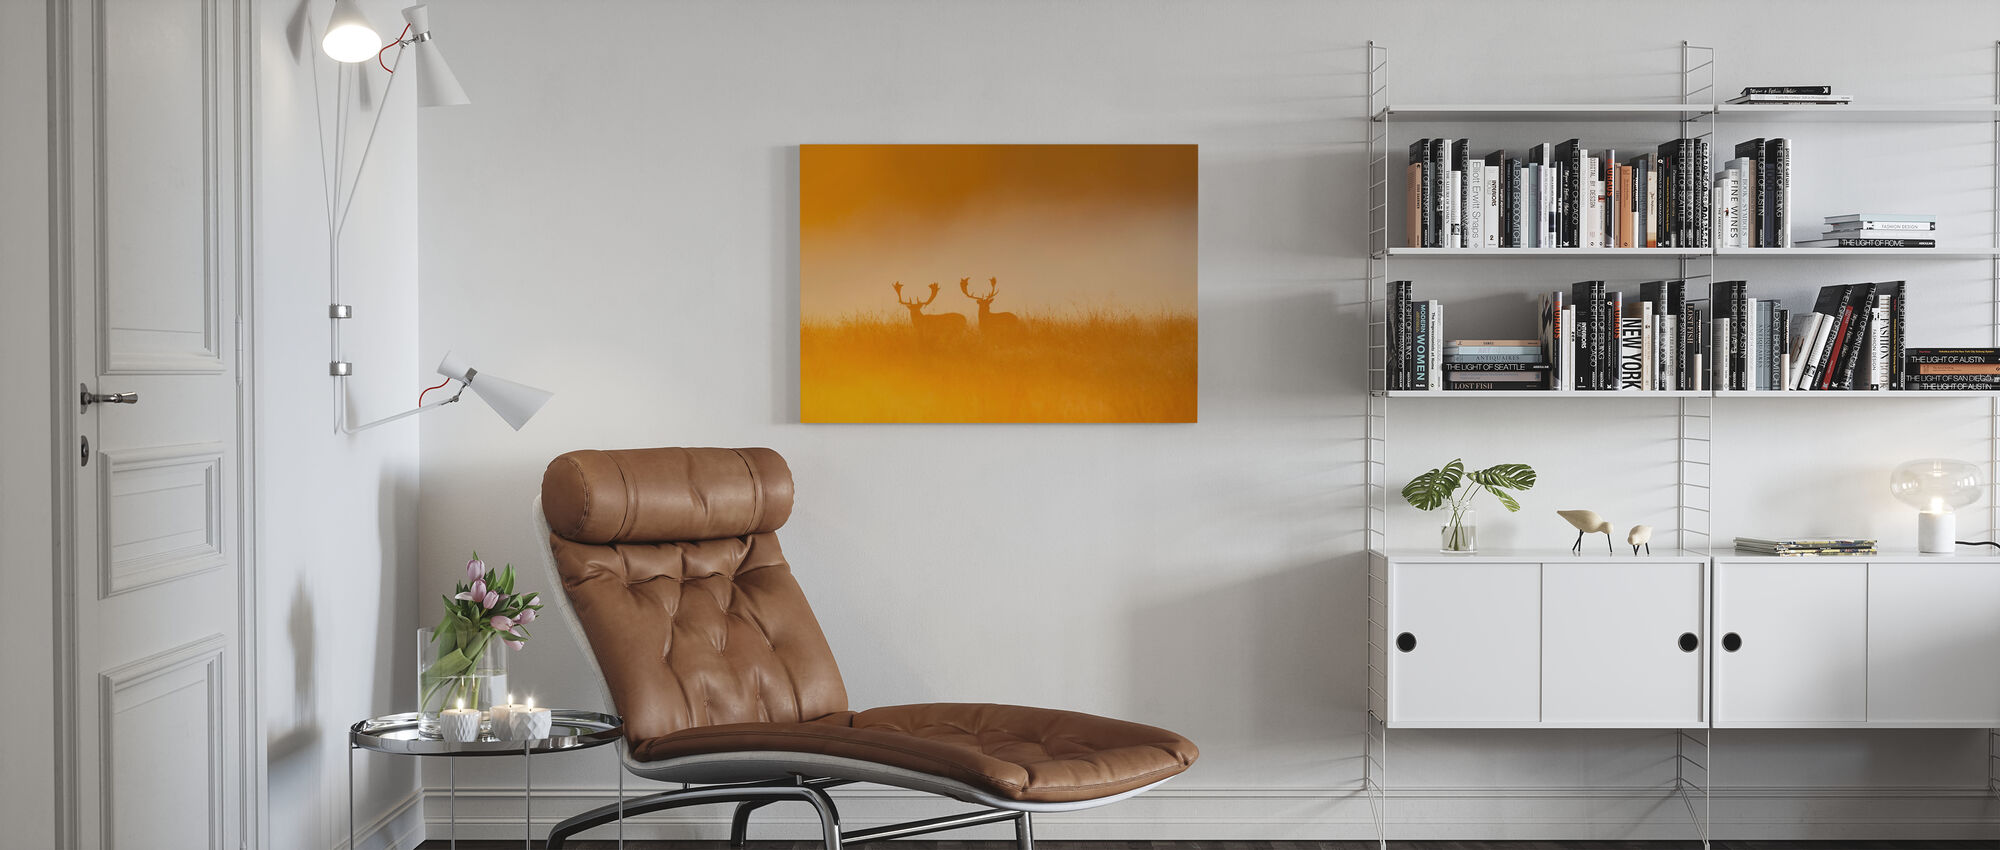 Deer in Yellow Light - Canvas print - Living Room